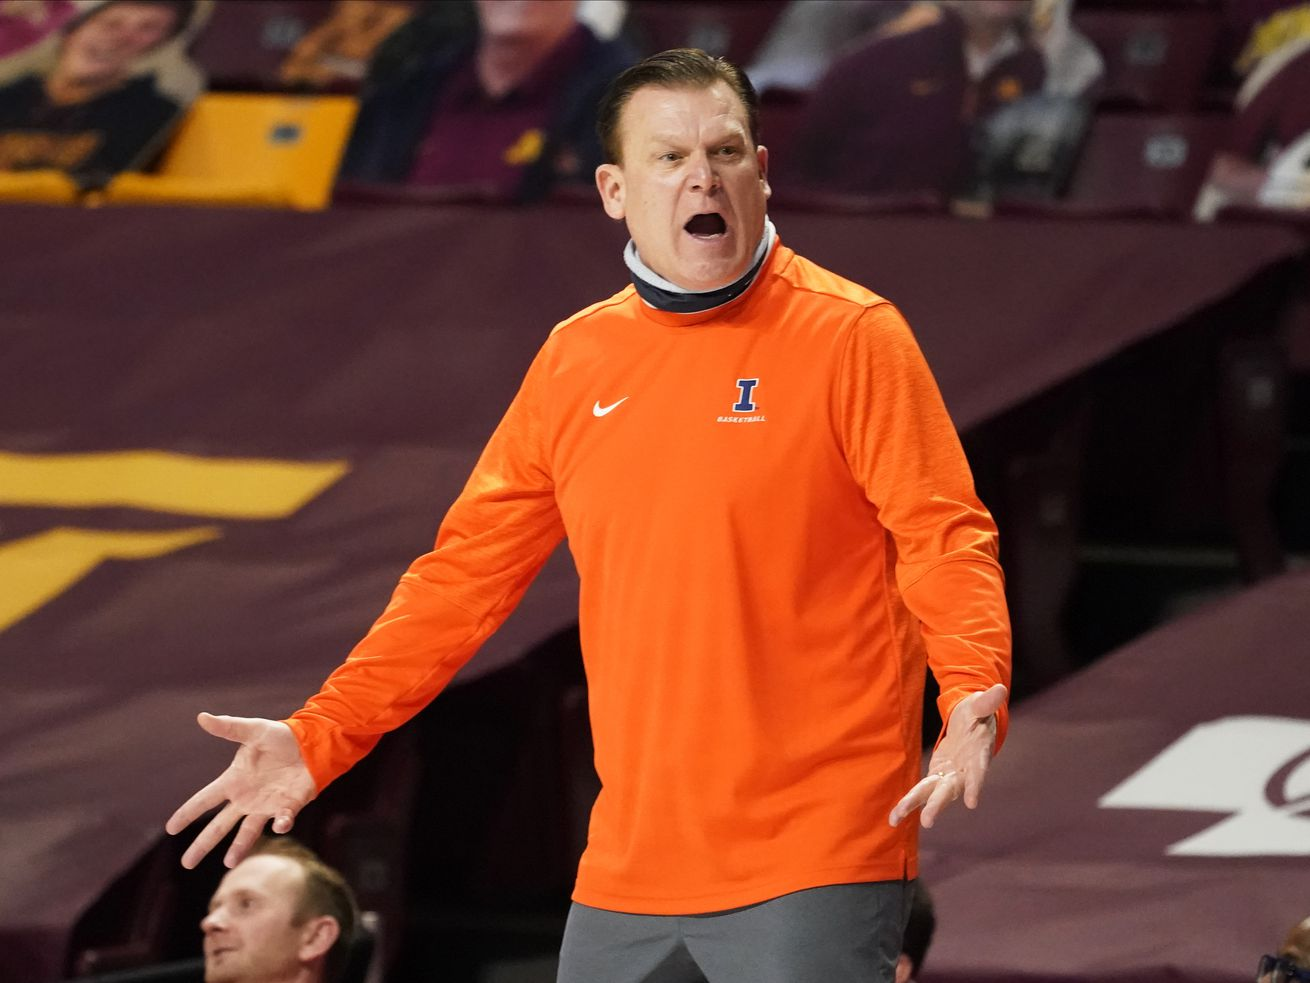 Coach Brad Underwood's Illinois team remains at No. 5 in the AP Top 25.